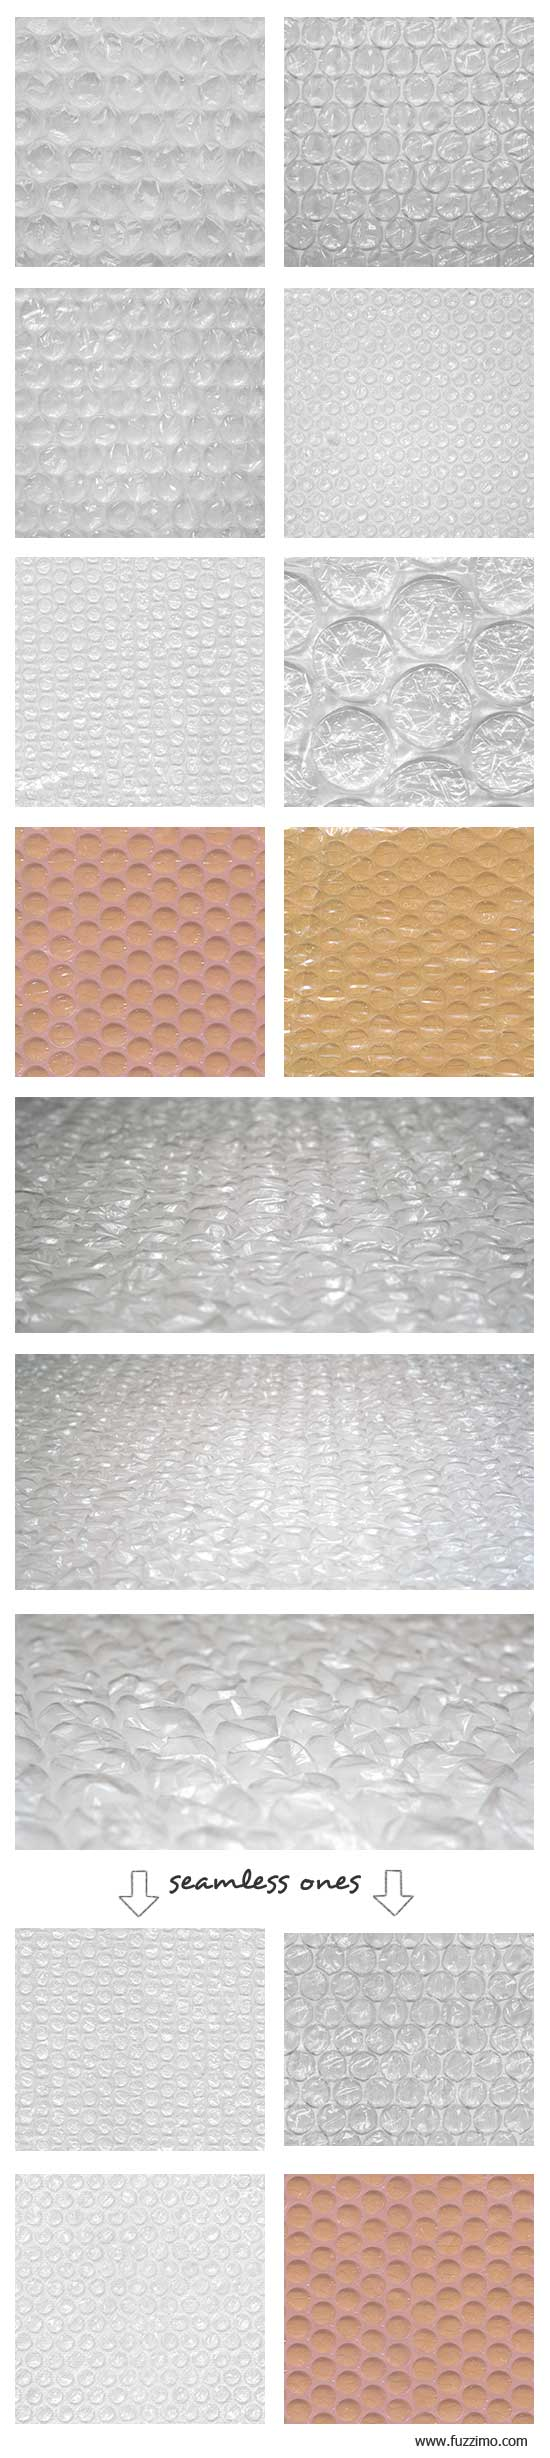 fzm-BubbleWrap.textures-02